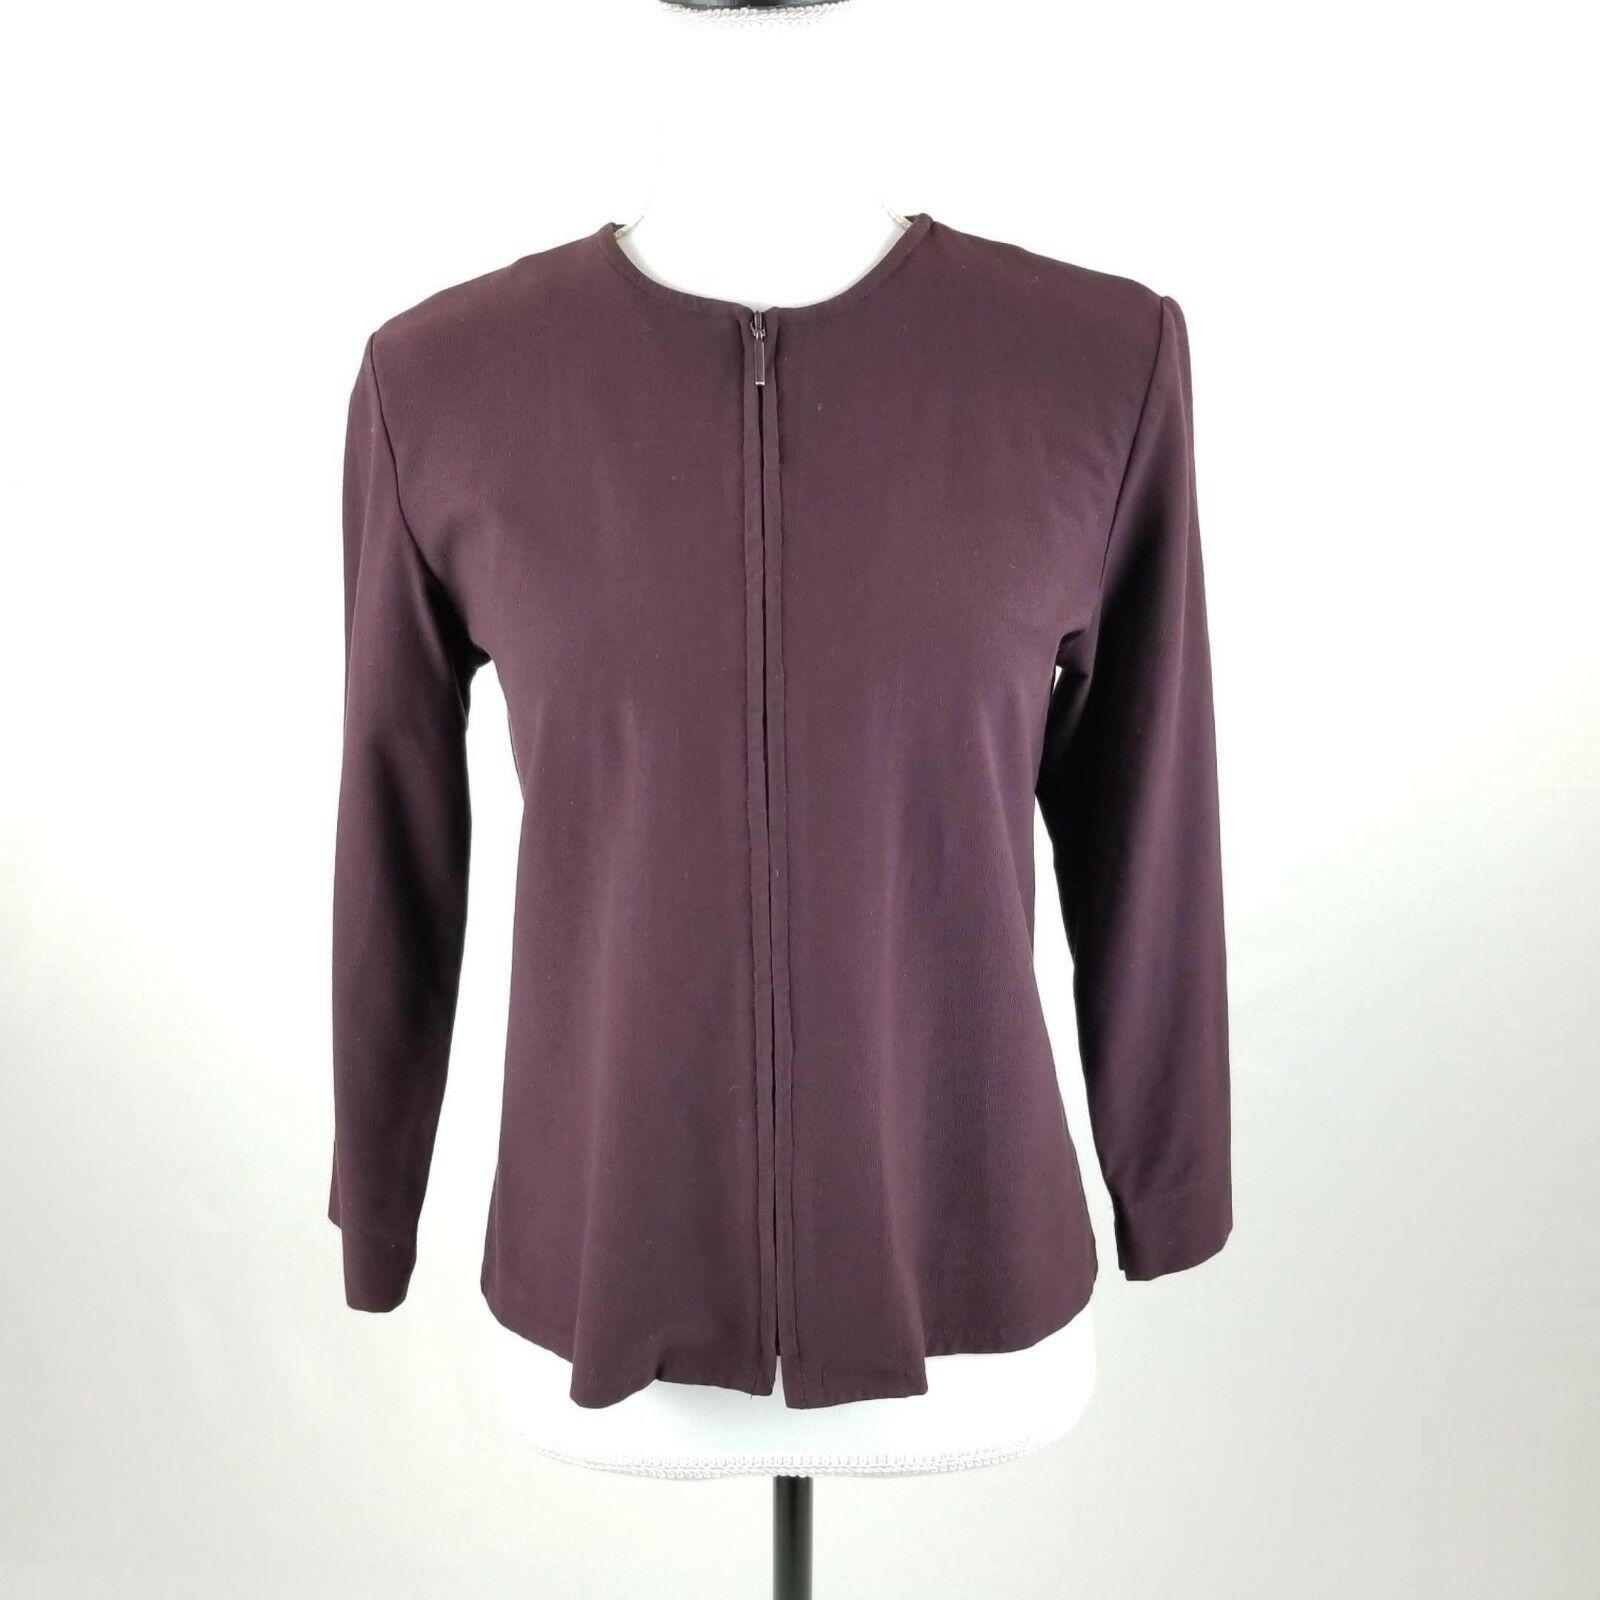 Eileen Fisher Womens Sweater Burgundy Cardigan Zipper Stretch Long Sleeve Sz S